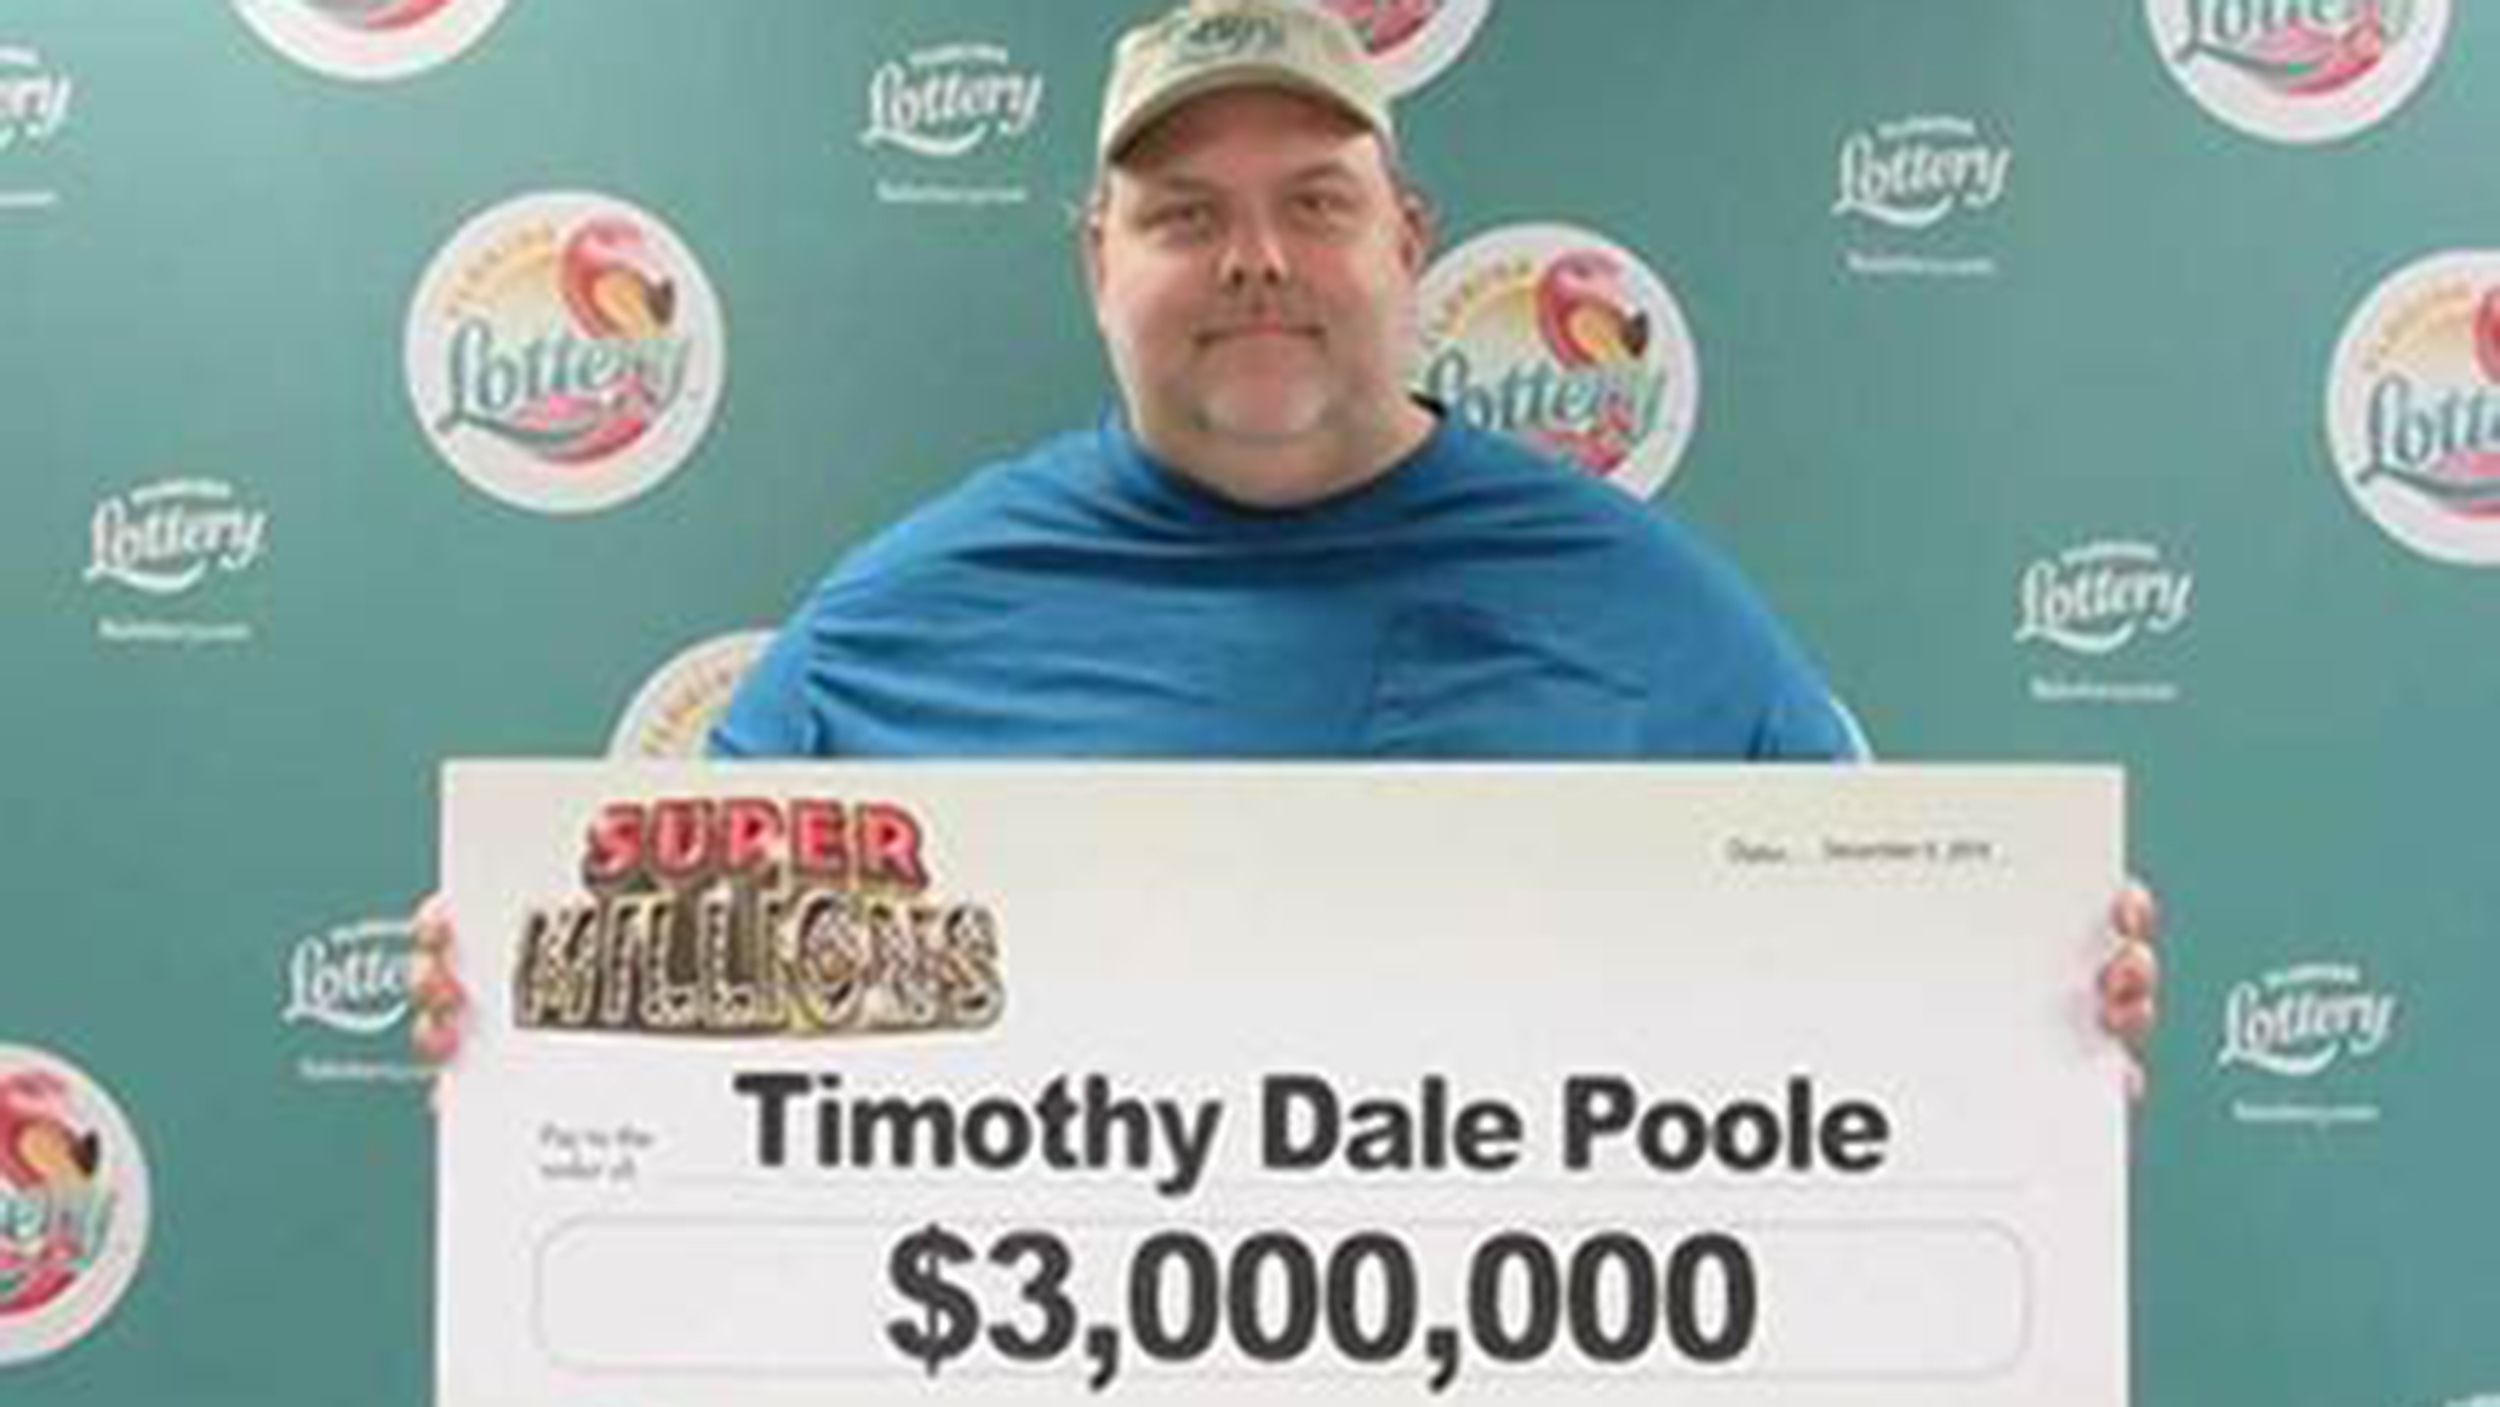 Sex Offender Wins 3 Million Lottery, Causes Debate